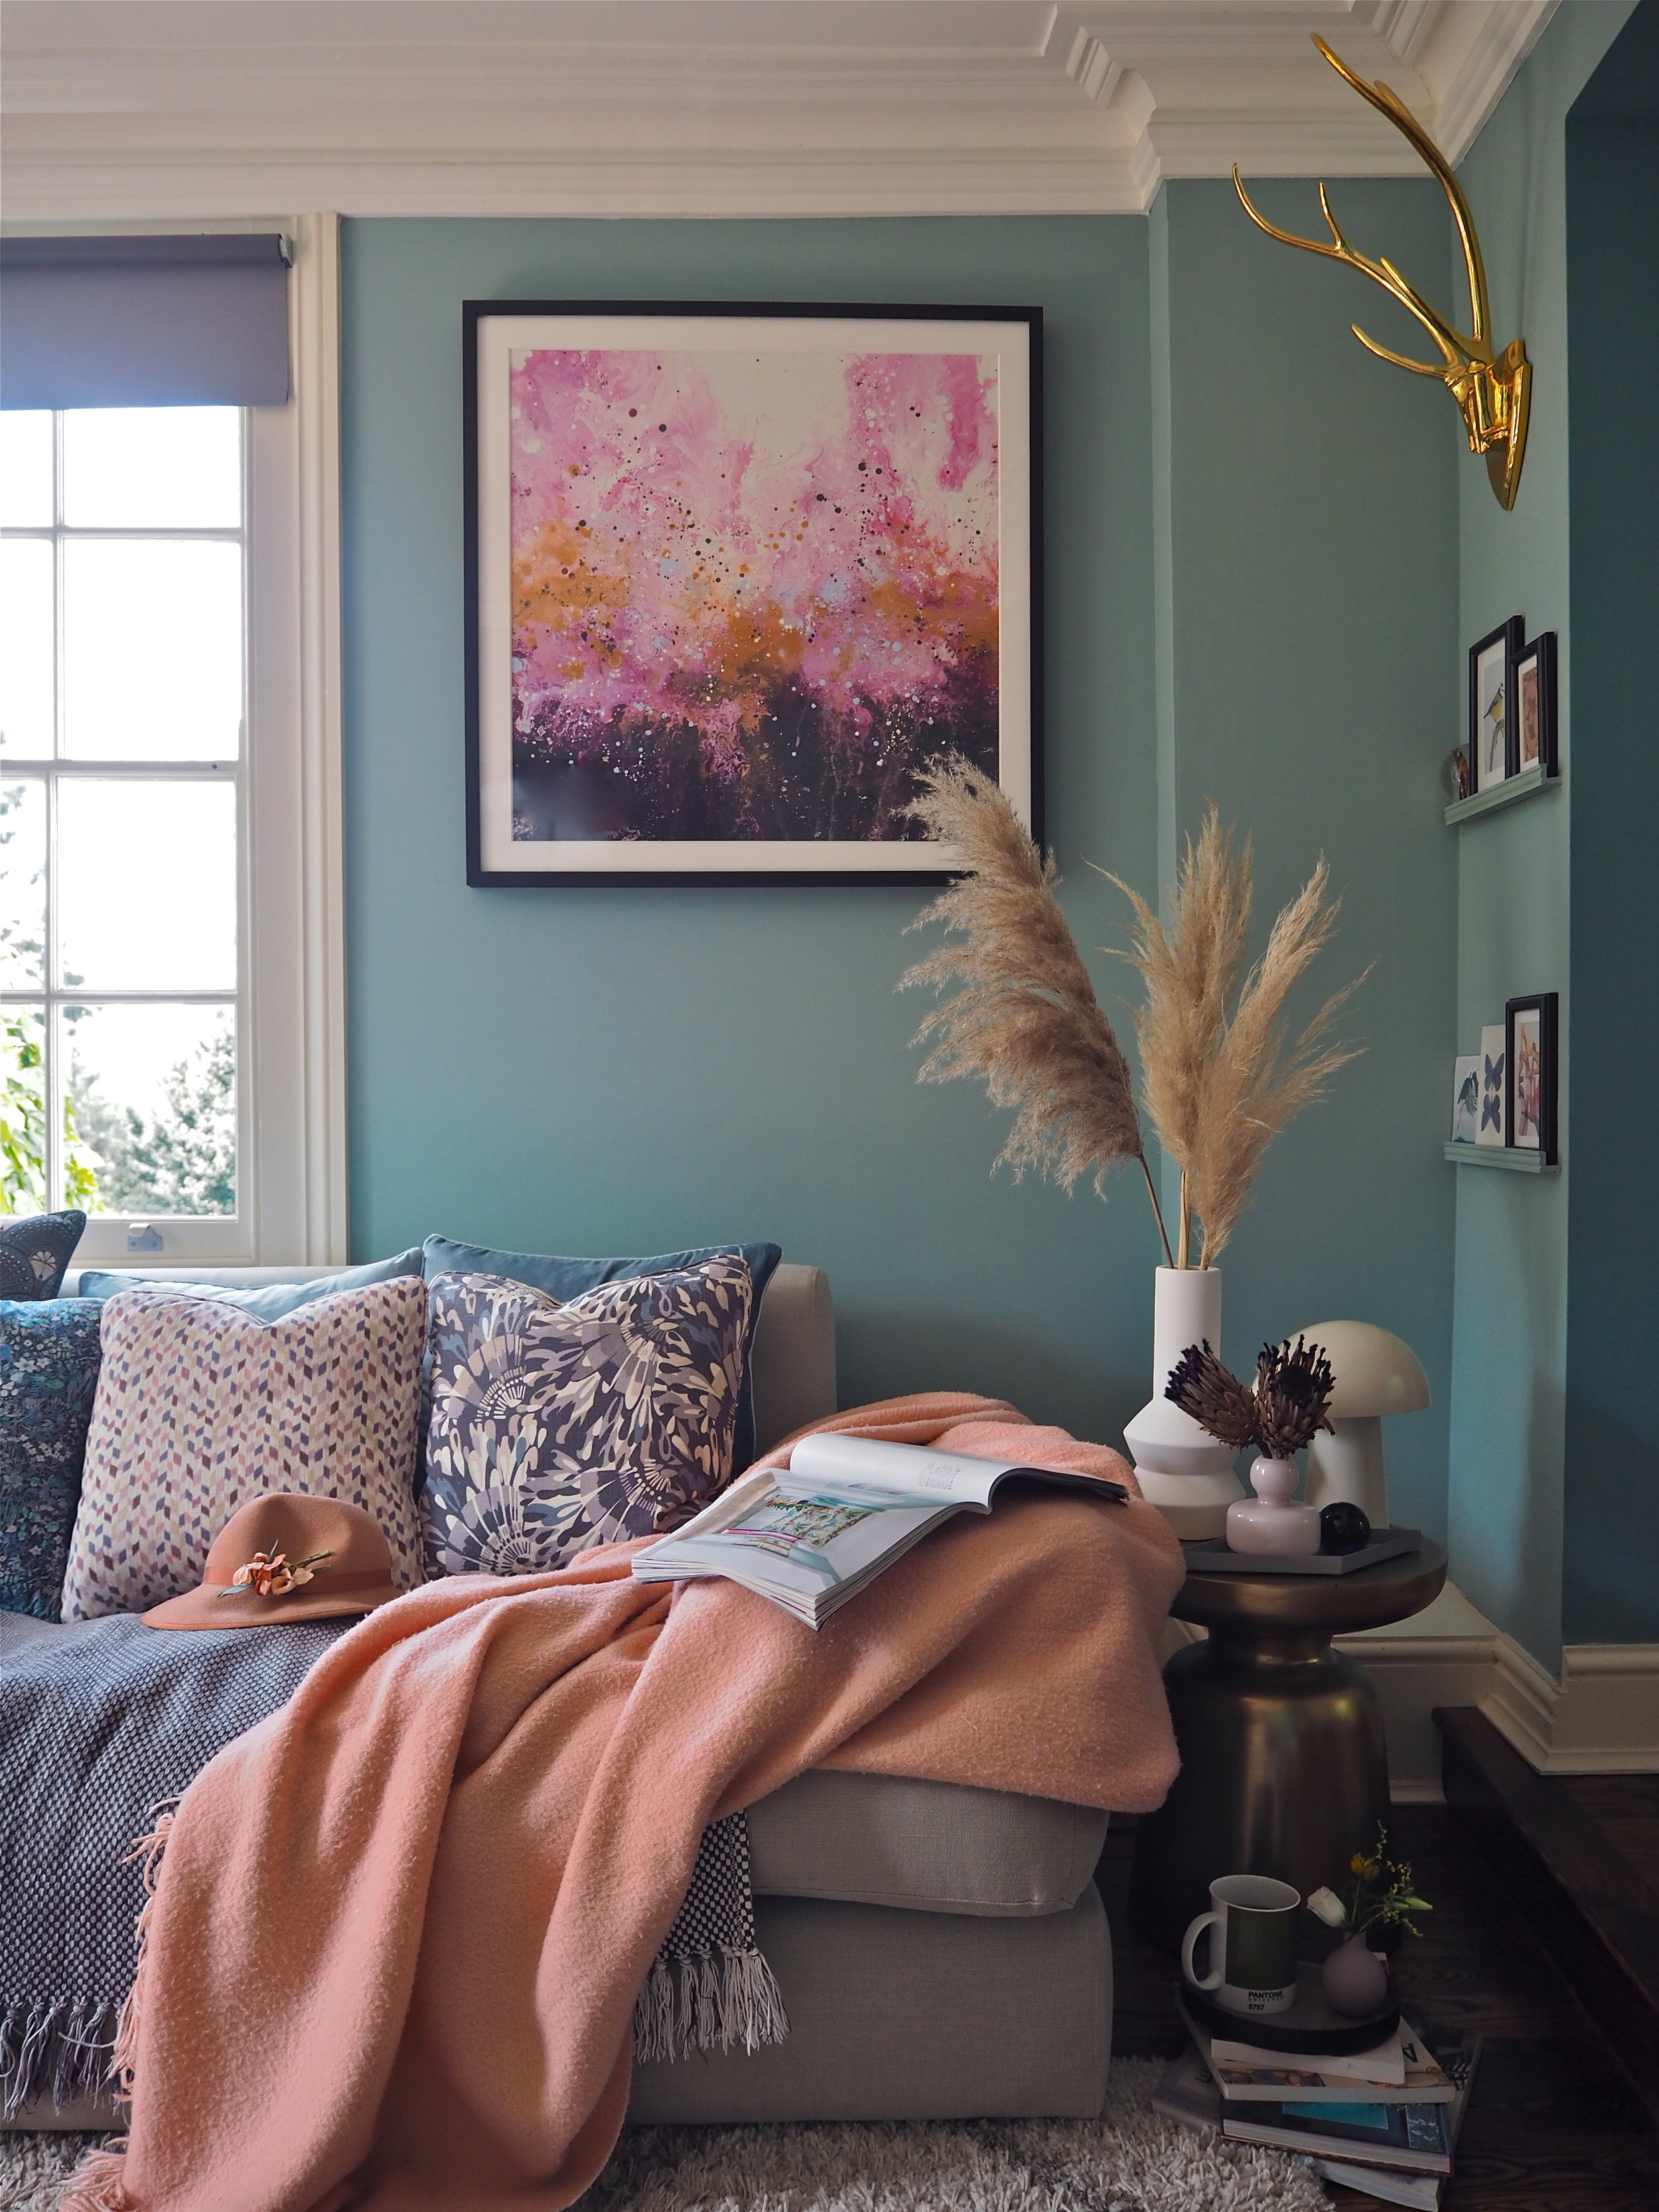 How to add colour in your home using art